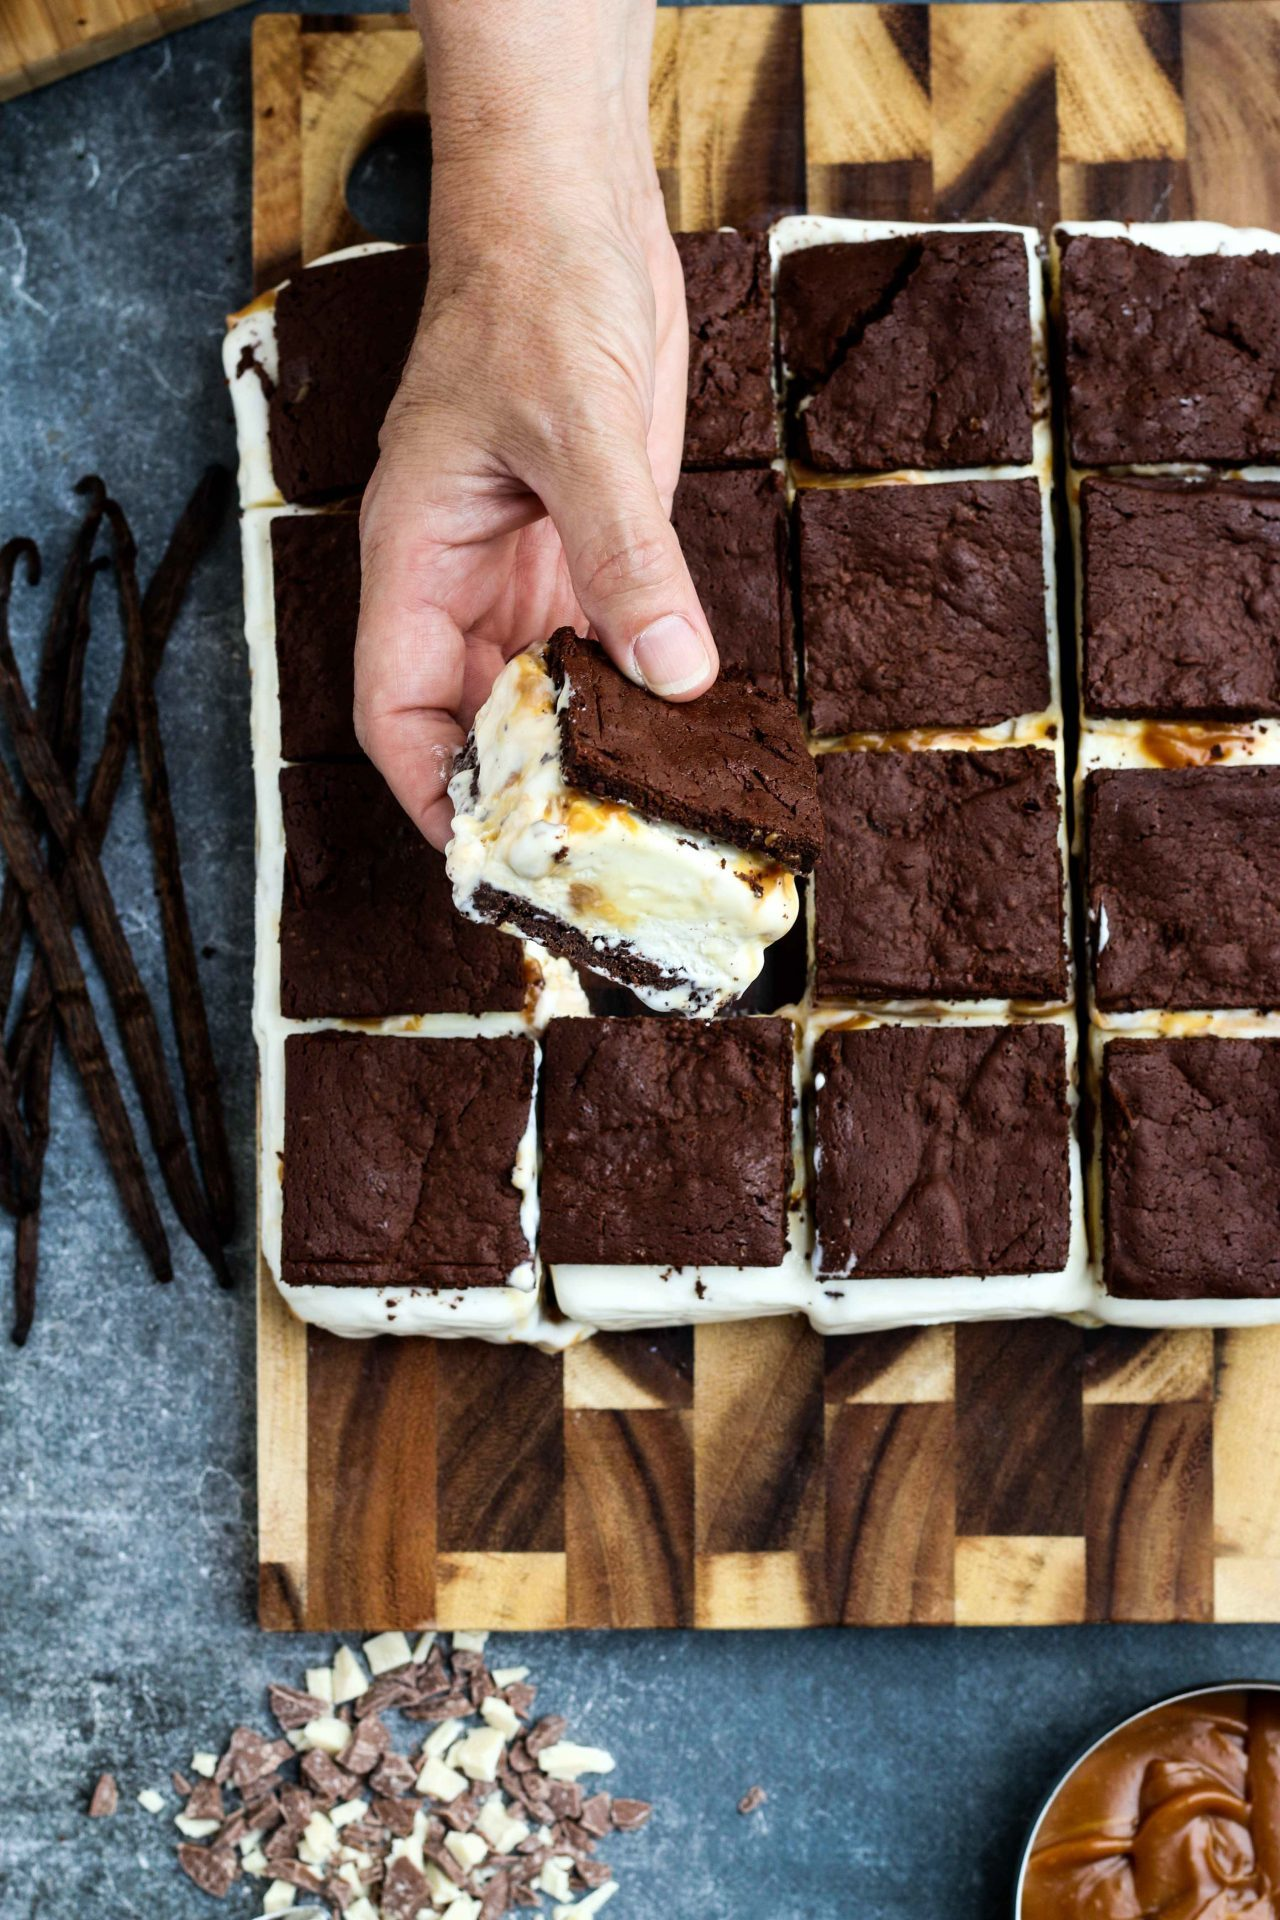 BROWNIE ICE CREAM AND SALTED CARAMEL SANDWICHES